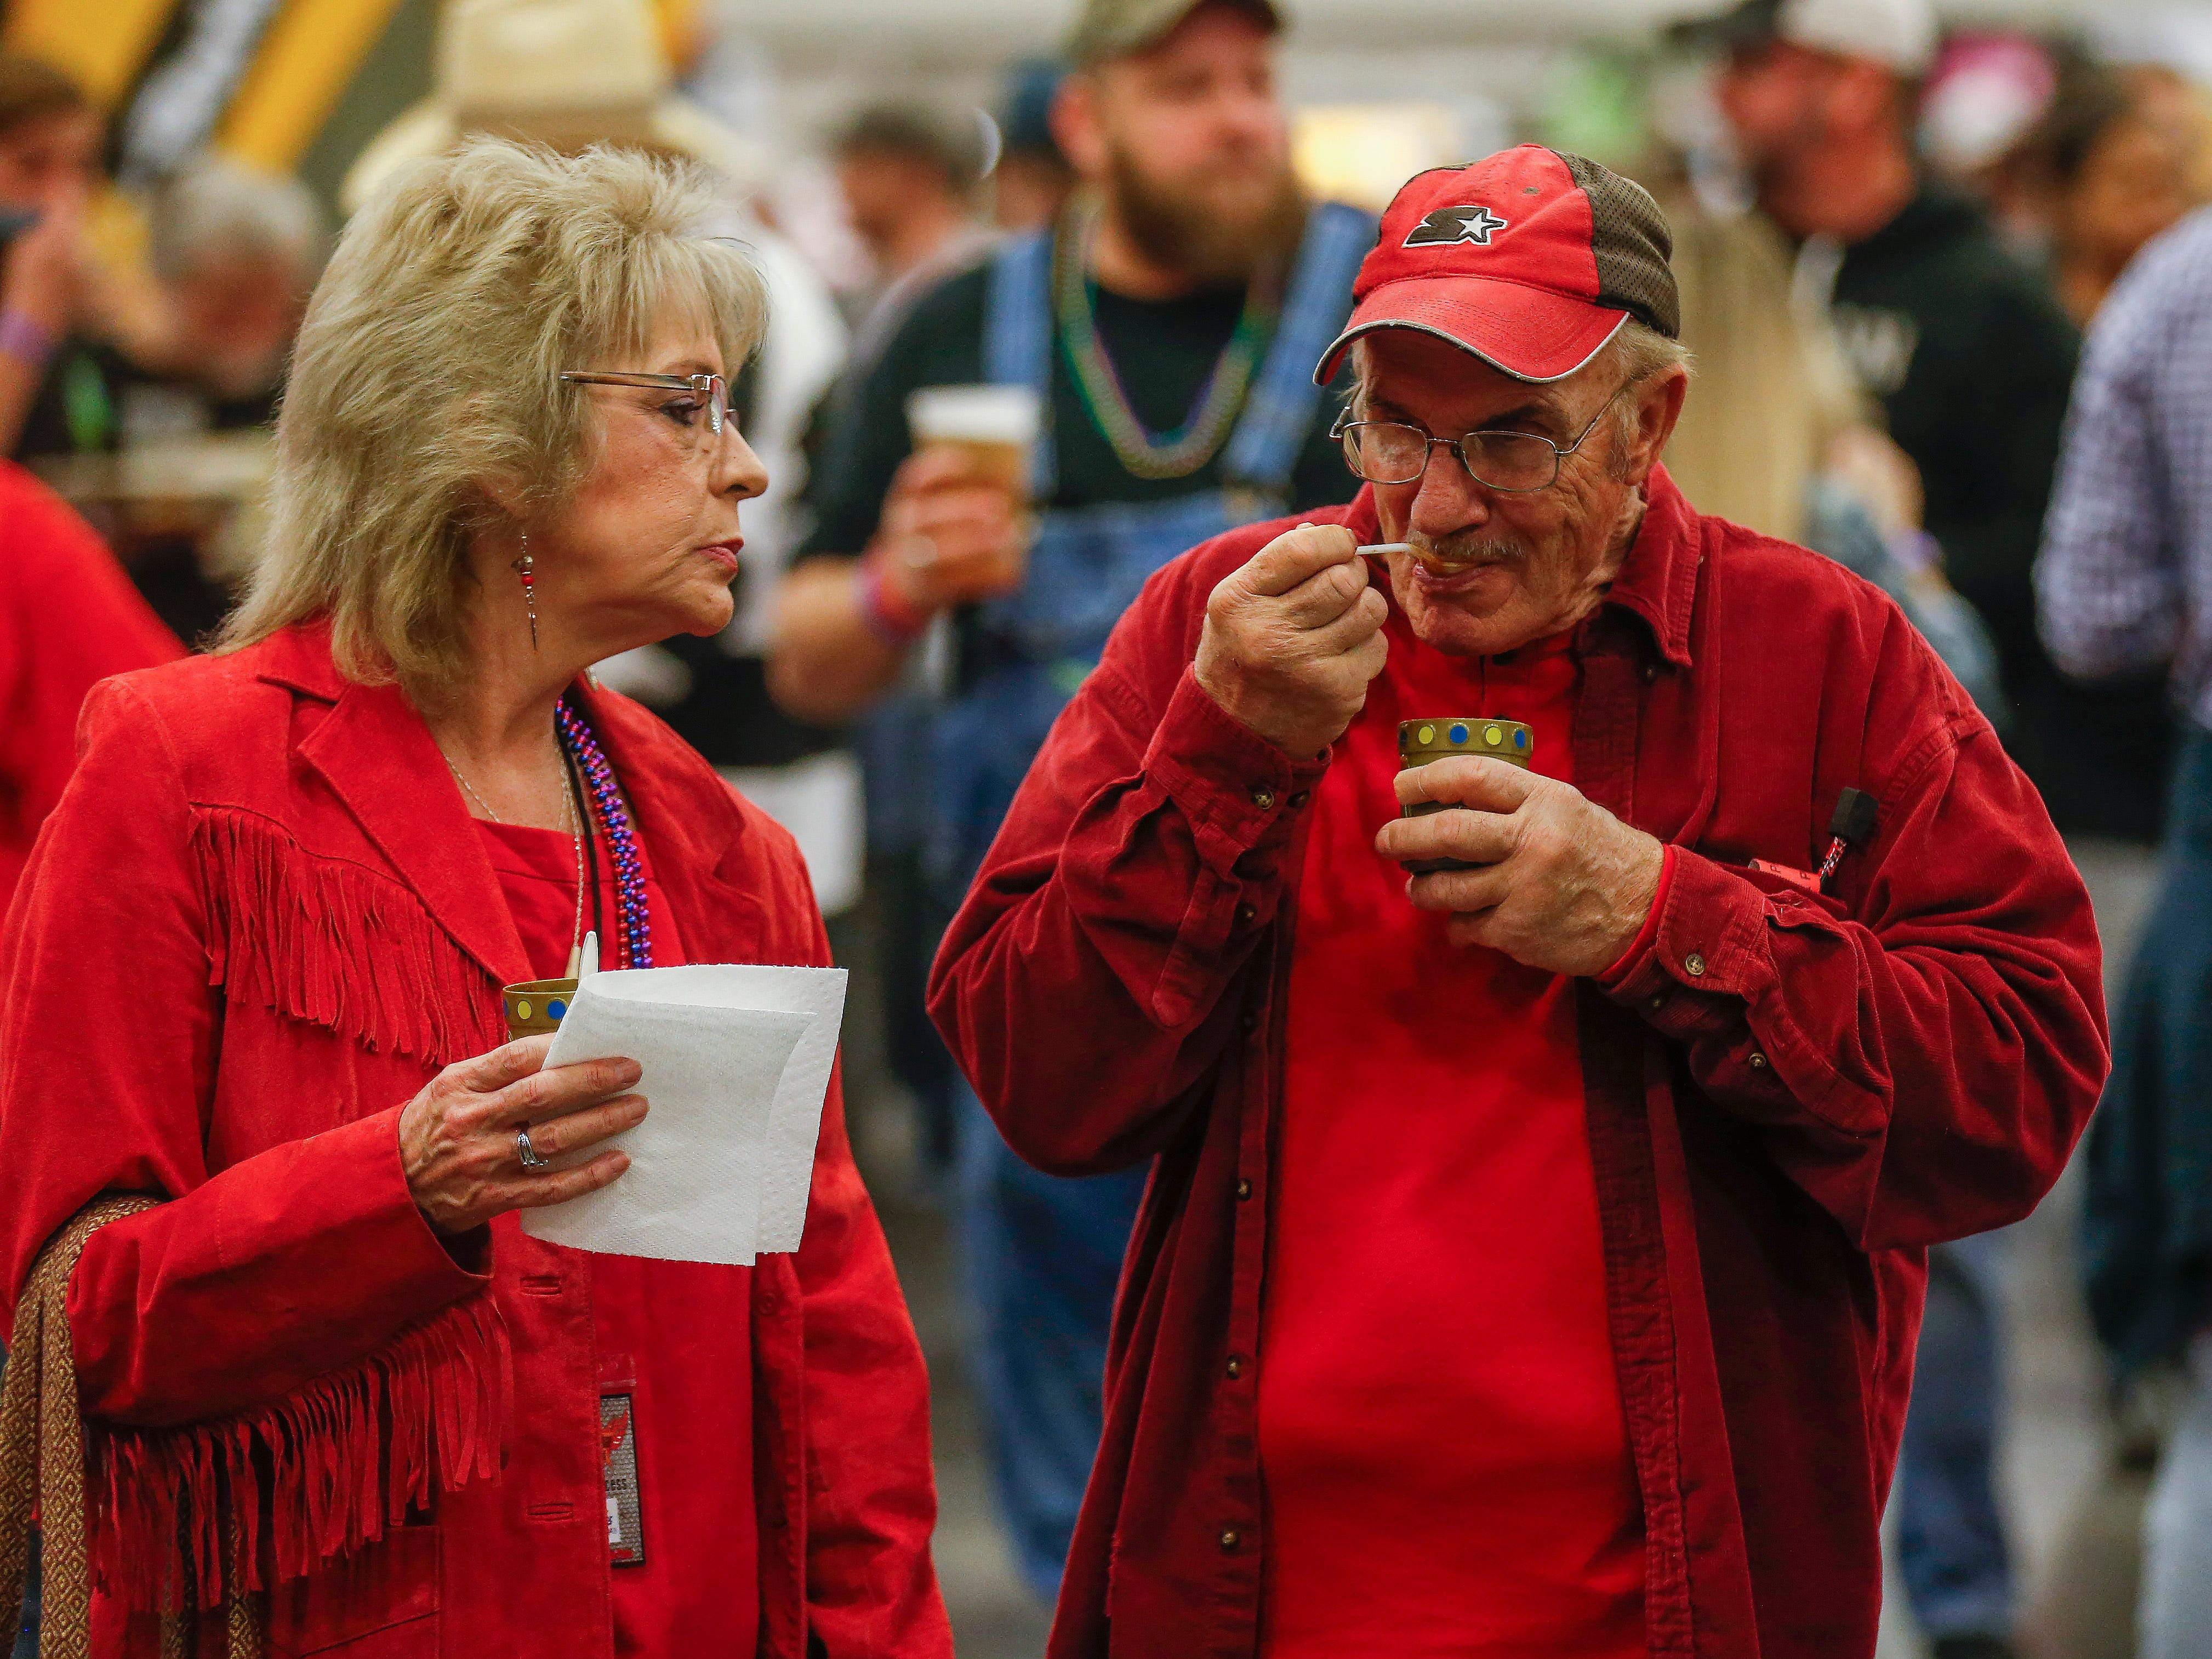 Kay and Frank Muggenburg, of Ozark, sample the chili during the 2019 Sertoma Chili Cook-Off at the Springfield Expo Center on Saturday, Feb. 23, 2019.